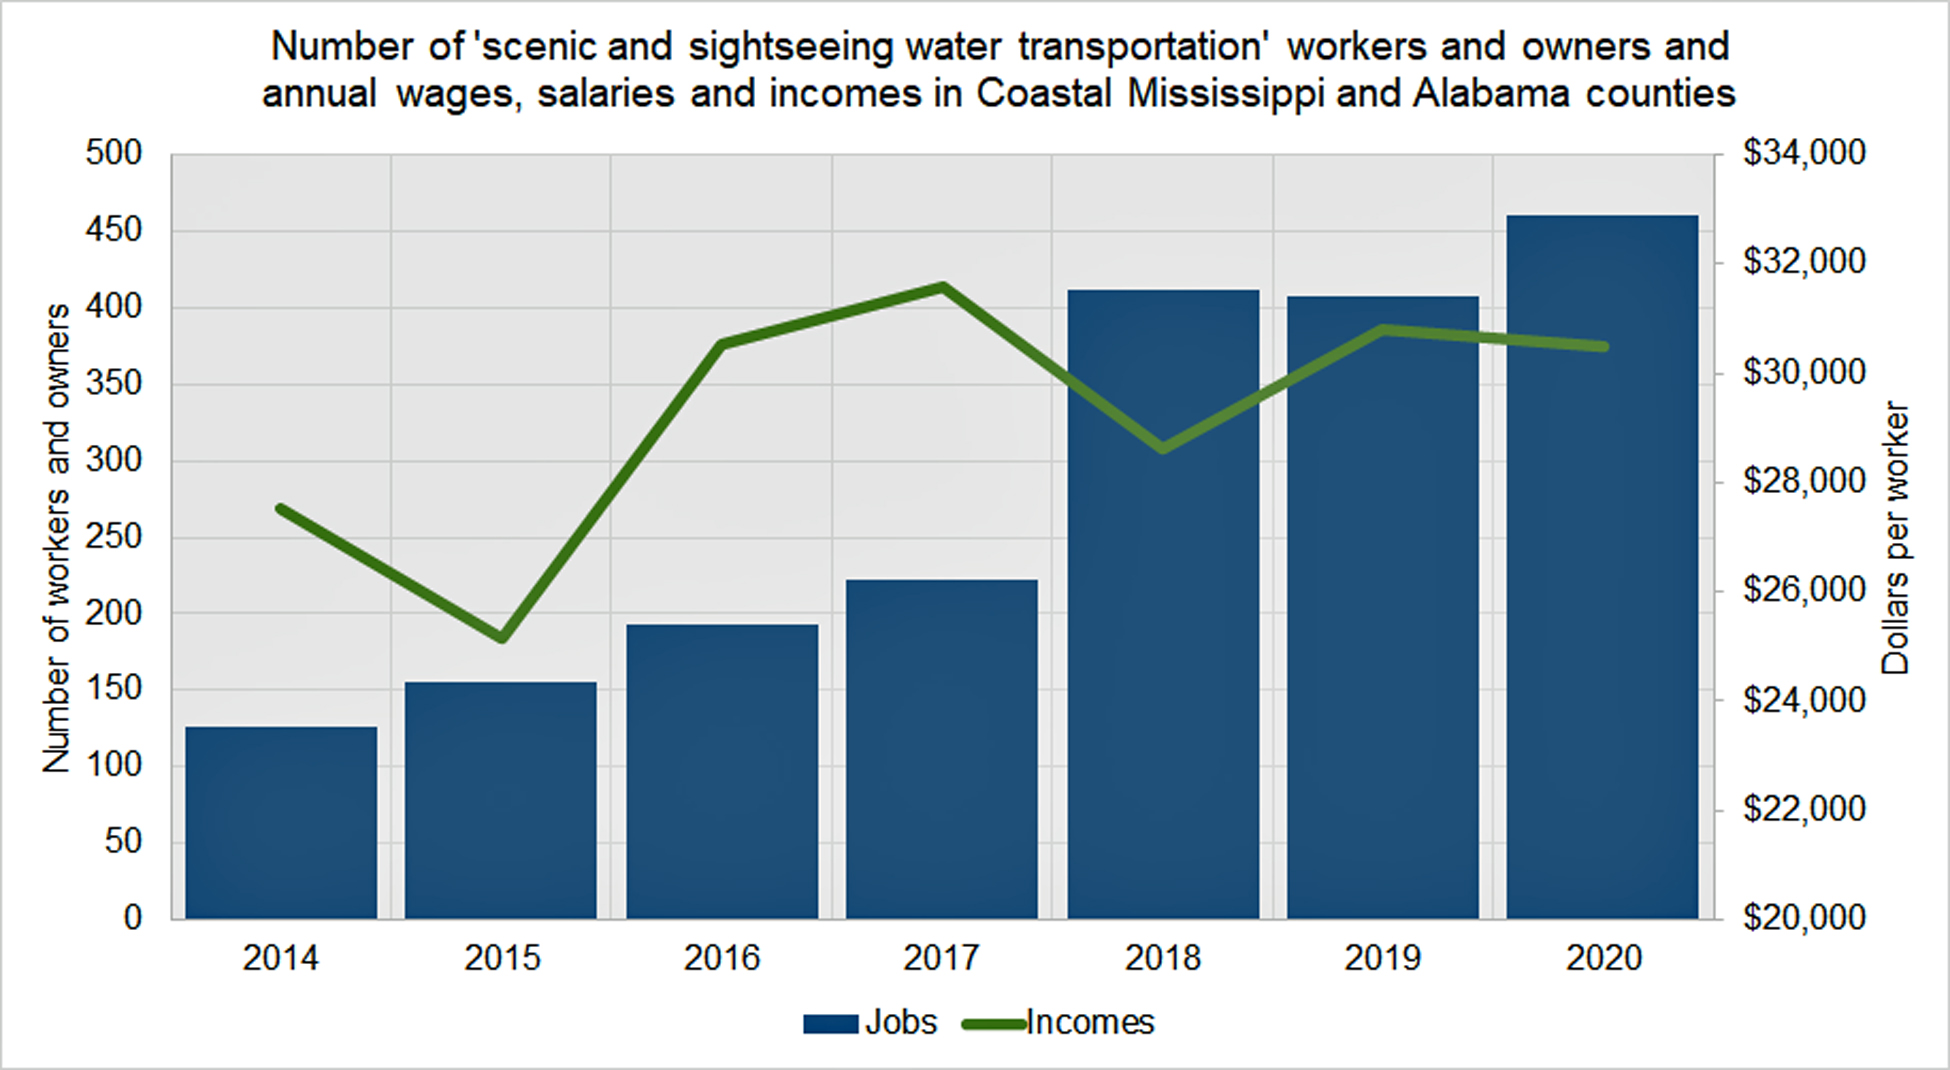 number_of_workers_and_owners_of_charter_boats_in_coastal_ms_and_al.jpg